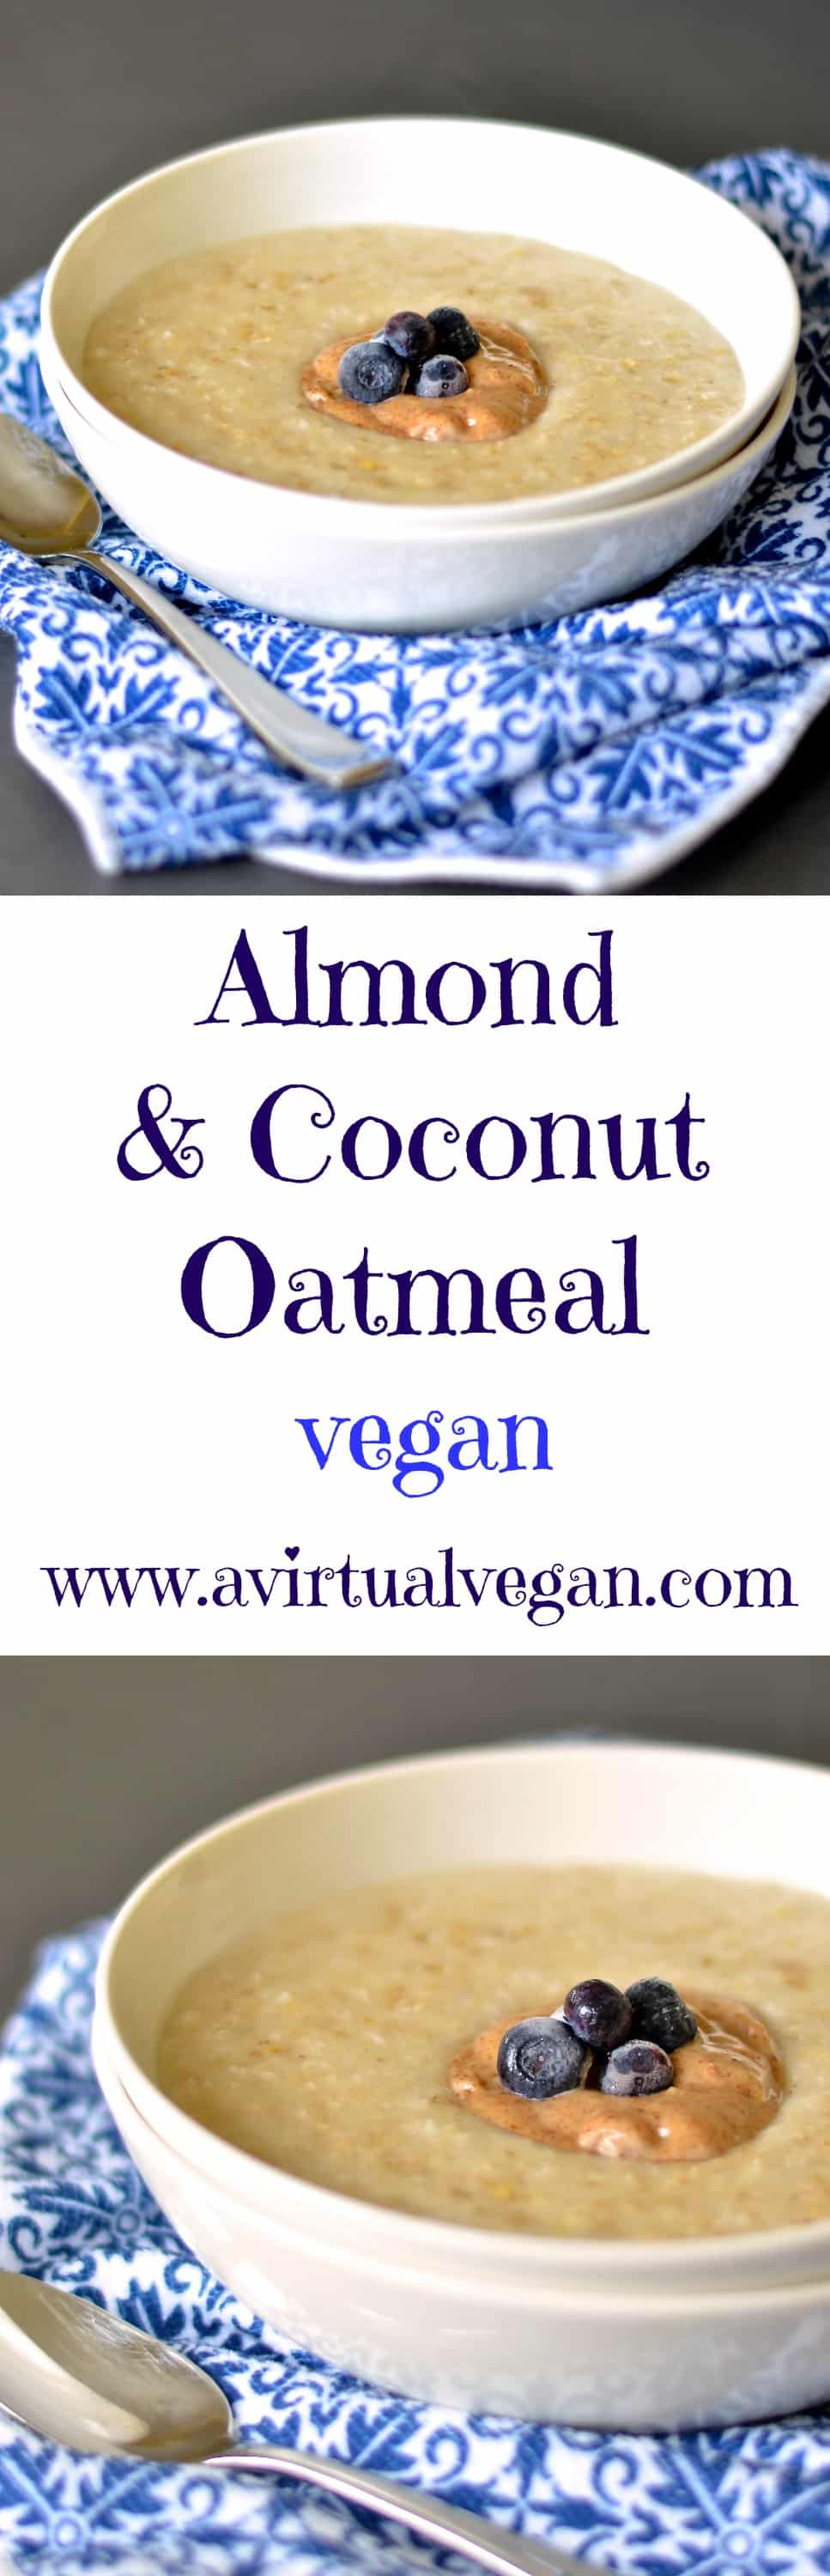 Upgrade your regular bowl of oatmeal to this ultra creamy & rich bowl of almond and coconut gorgeousness and I promise you won't be disappointed! #oatmeal #vegan #almond #coconut